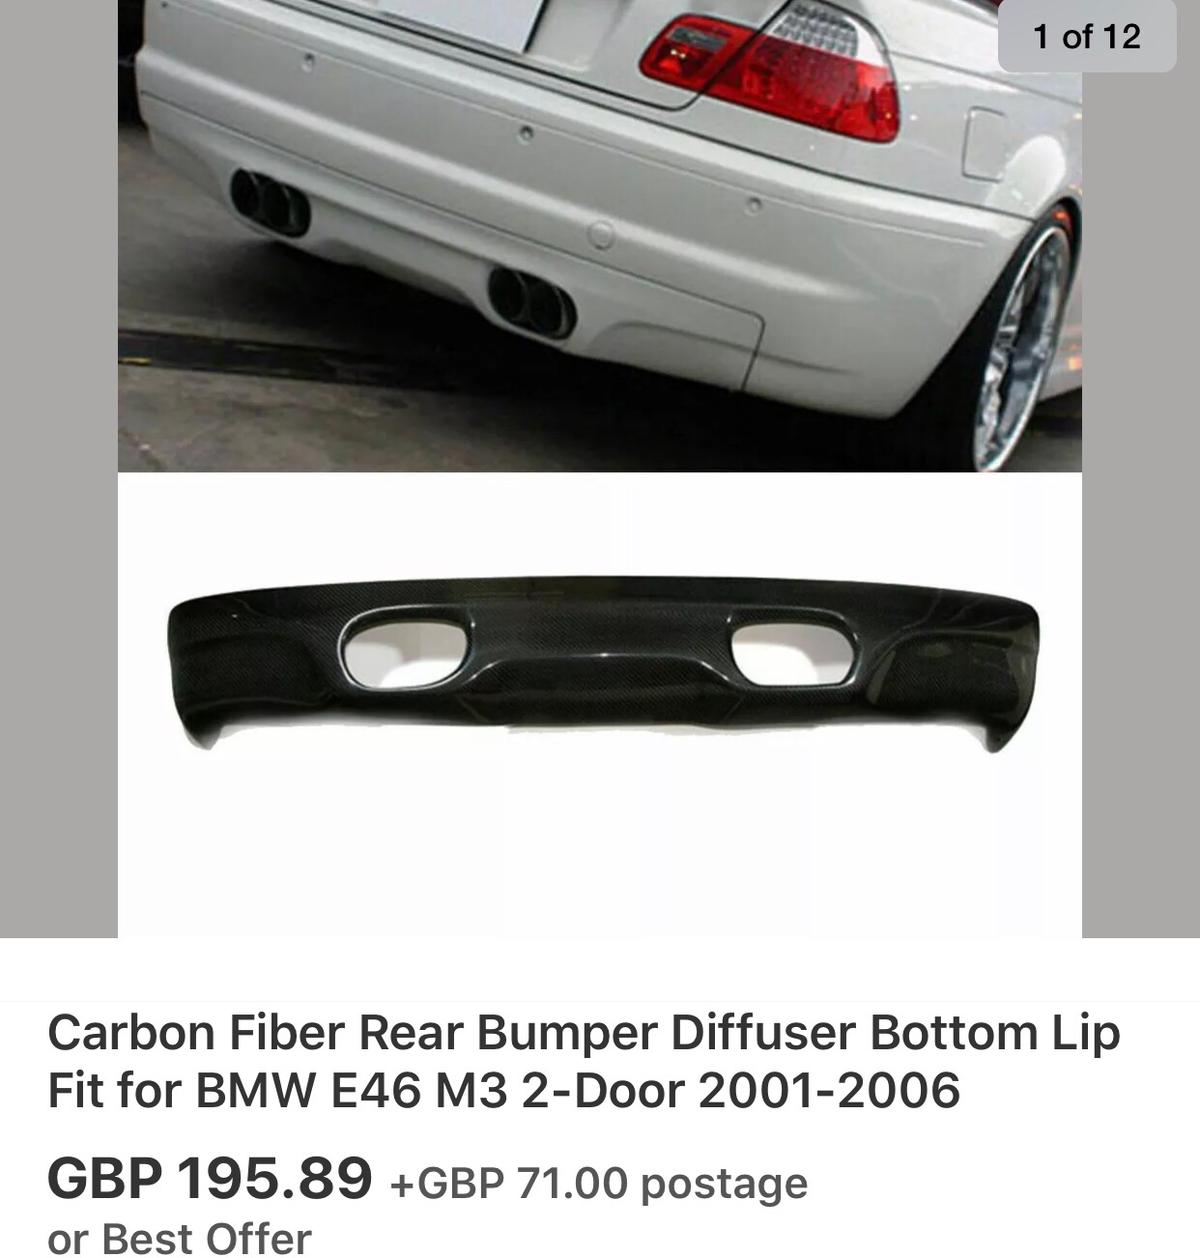 Bmw E46 M3 Rear Diffuser Absolute Bargain In De13 Staffordshire For 45 00 For Sale Shpock